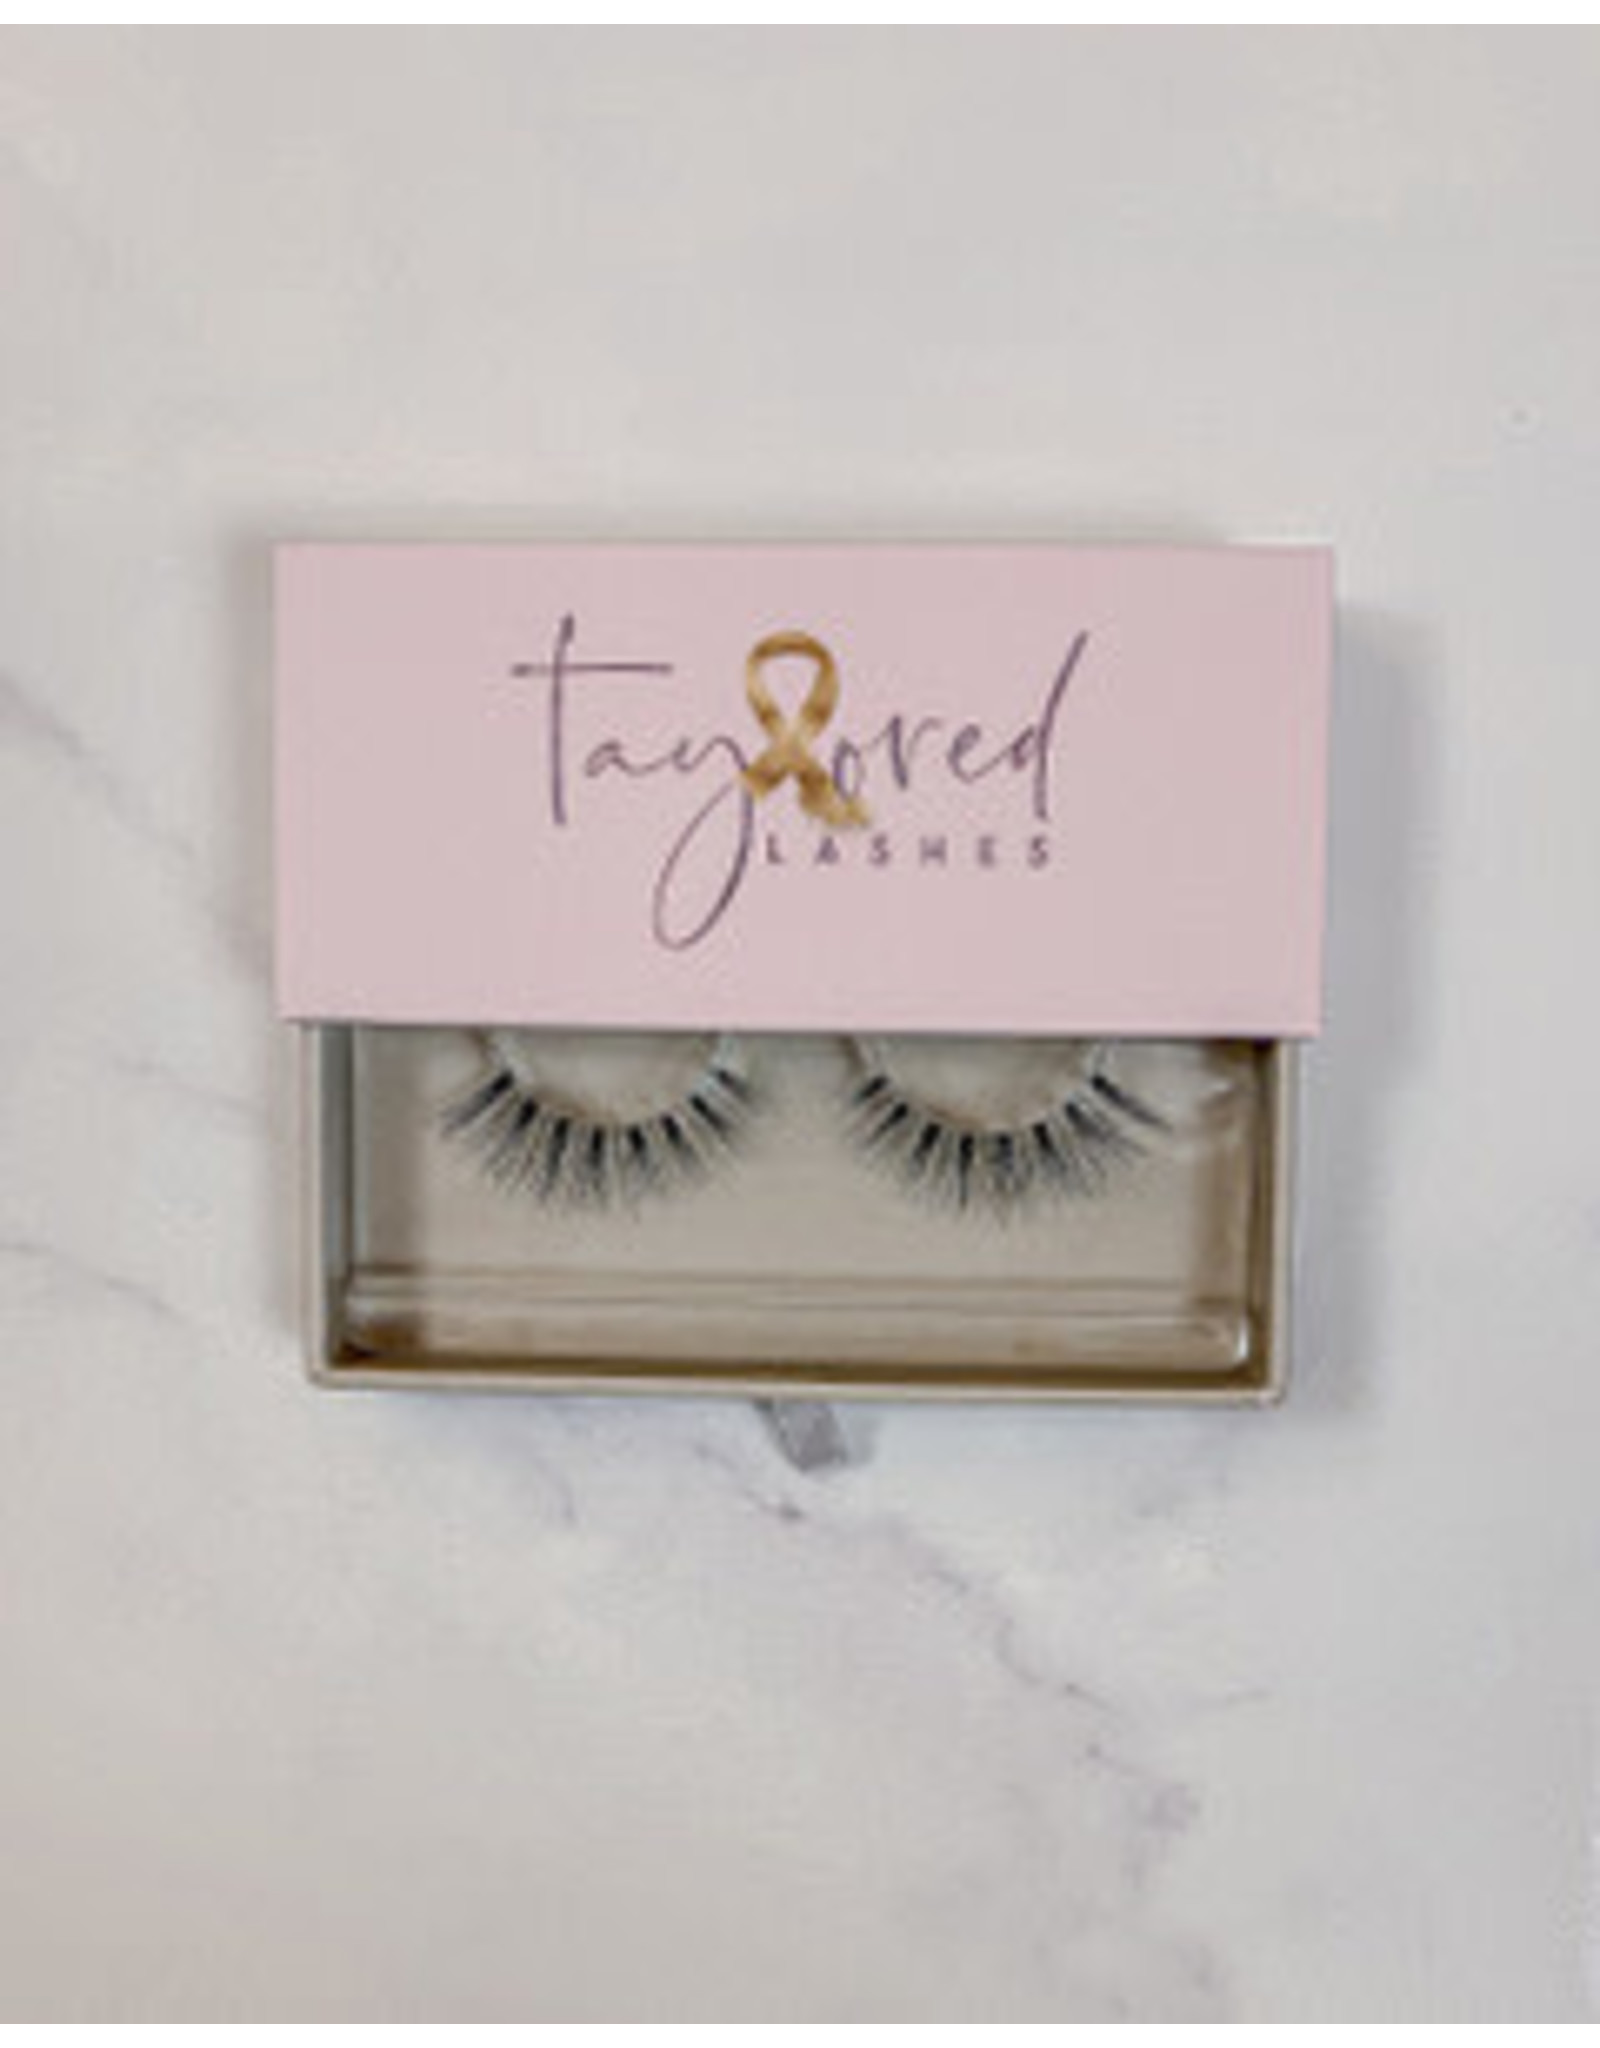 Taylored Lashes Happy Hour Gift Set